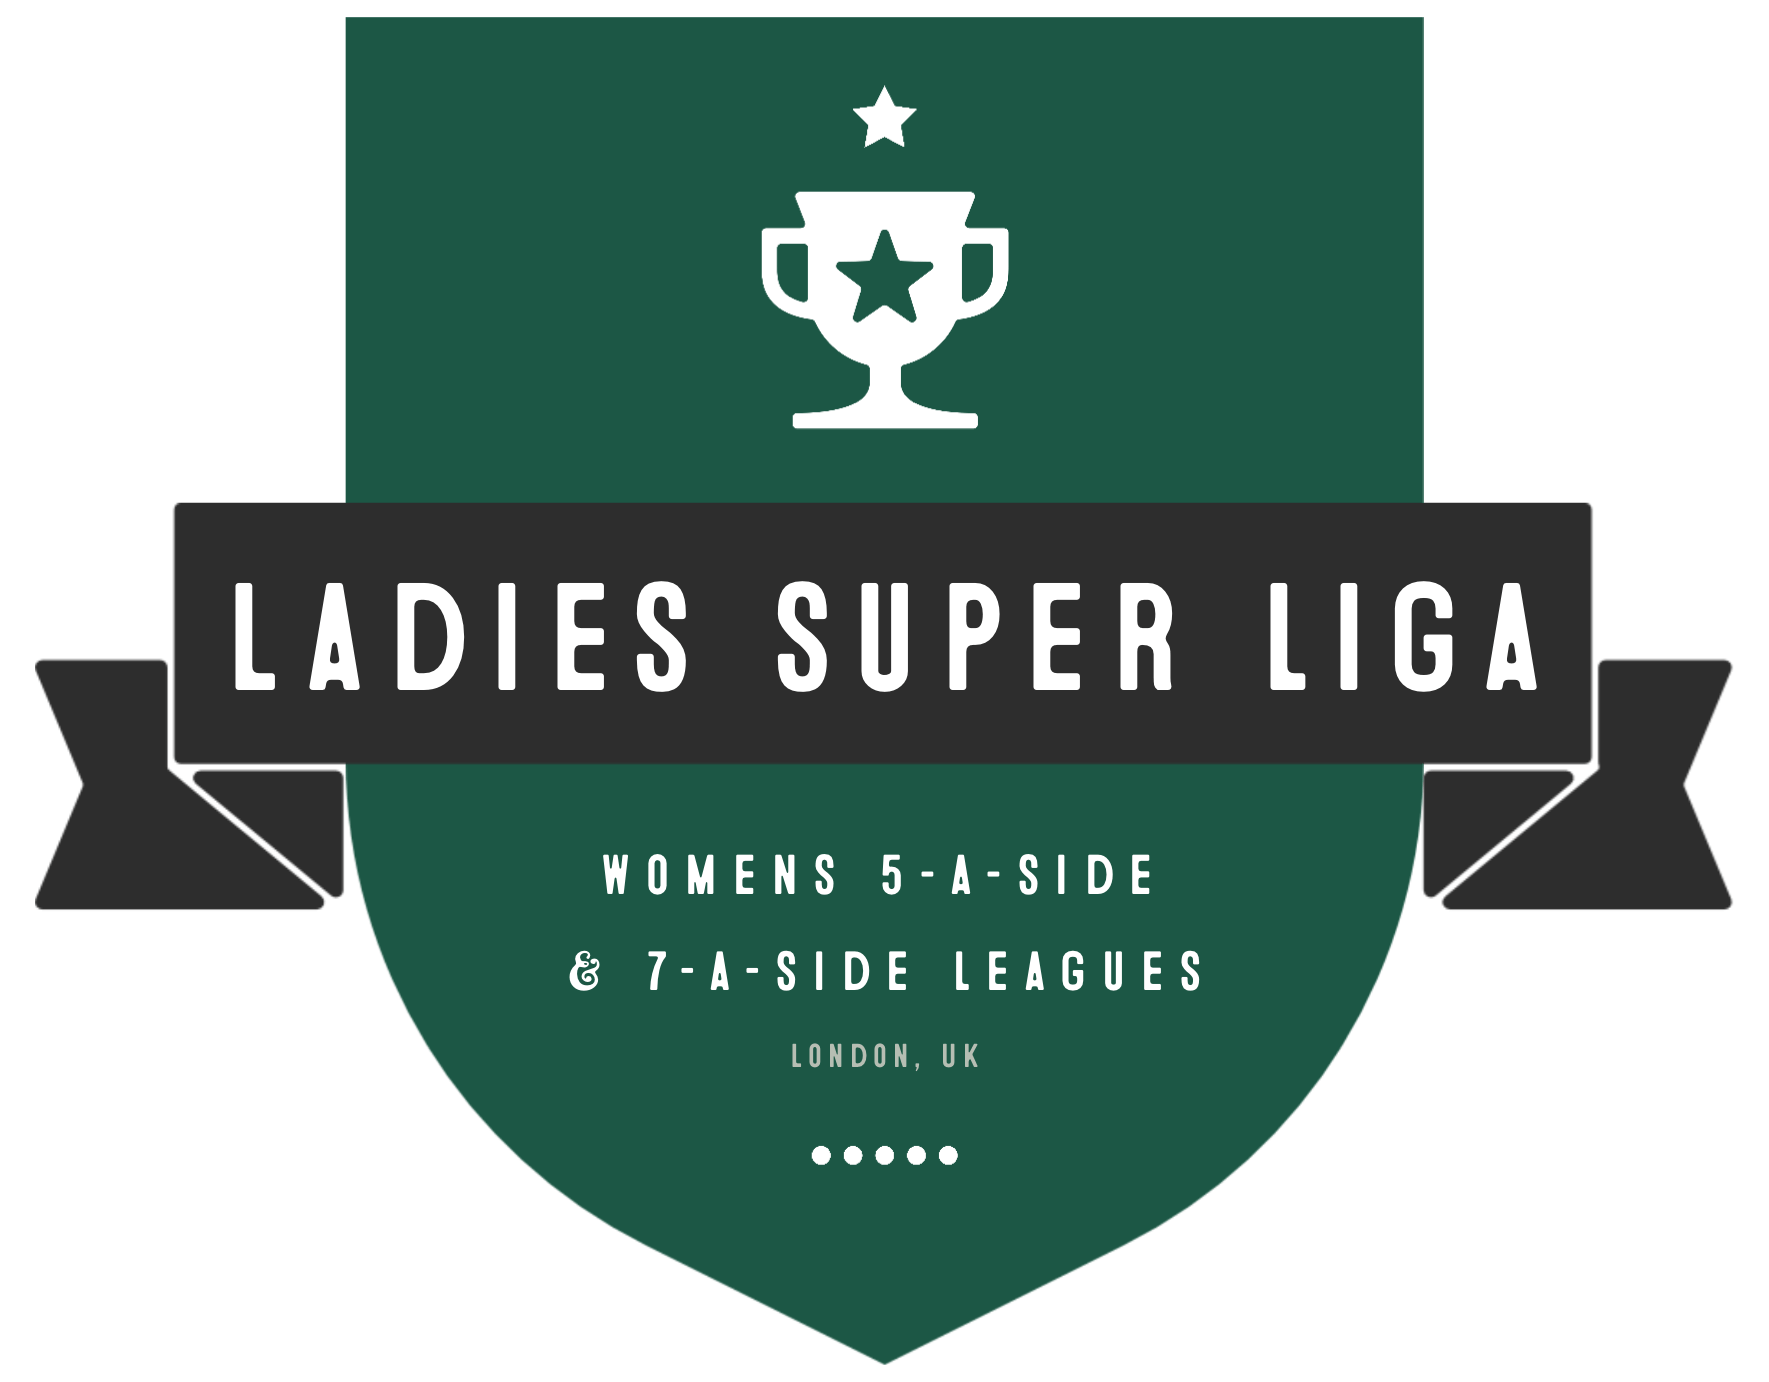 Ladies Super Liga